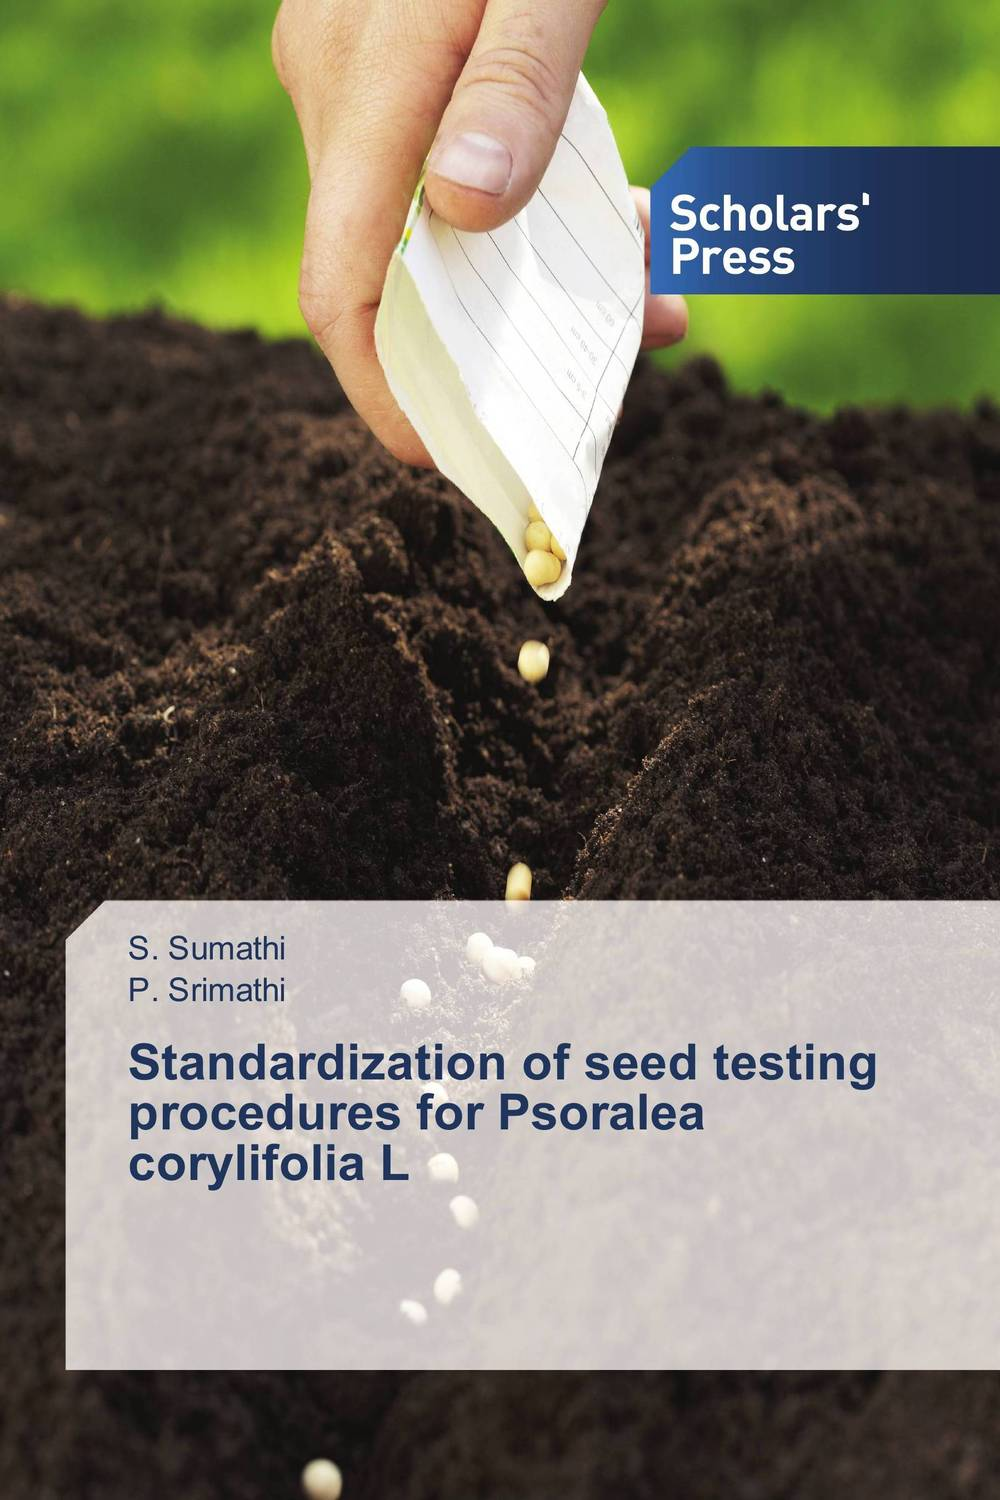 Standardization of seed testing procedures for Psoralea corylifolia L seed dormancy and germination